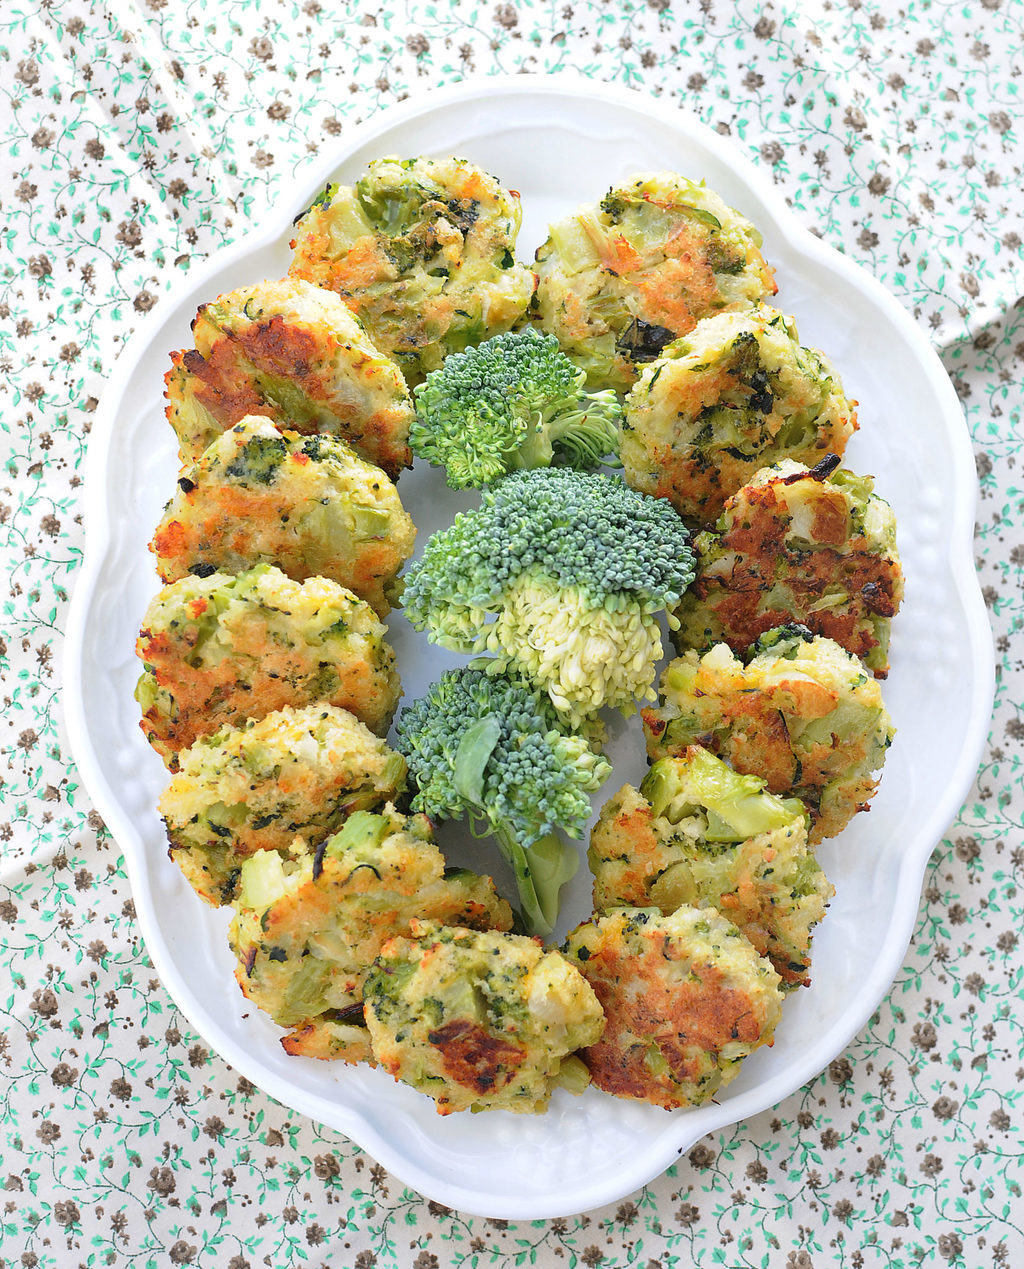 Broccoli Bites From EatinontheCheap.com